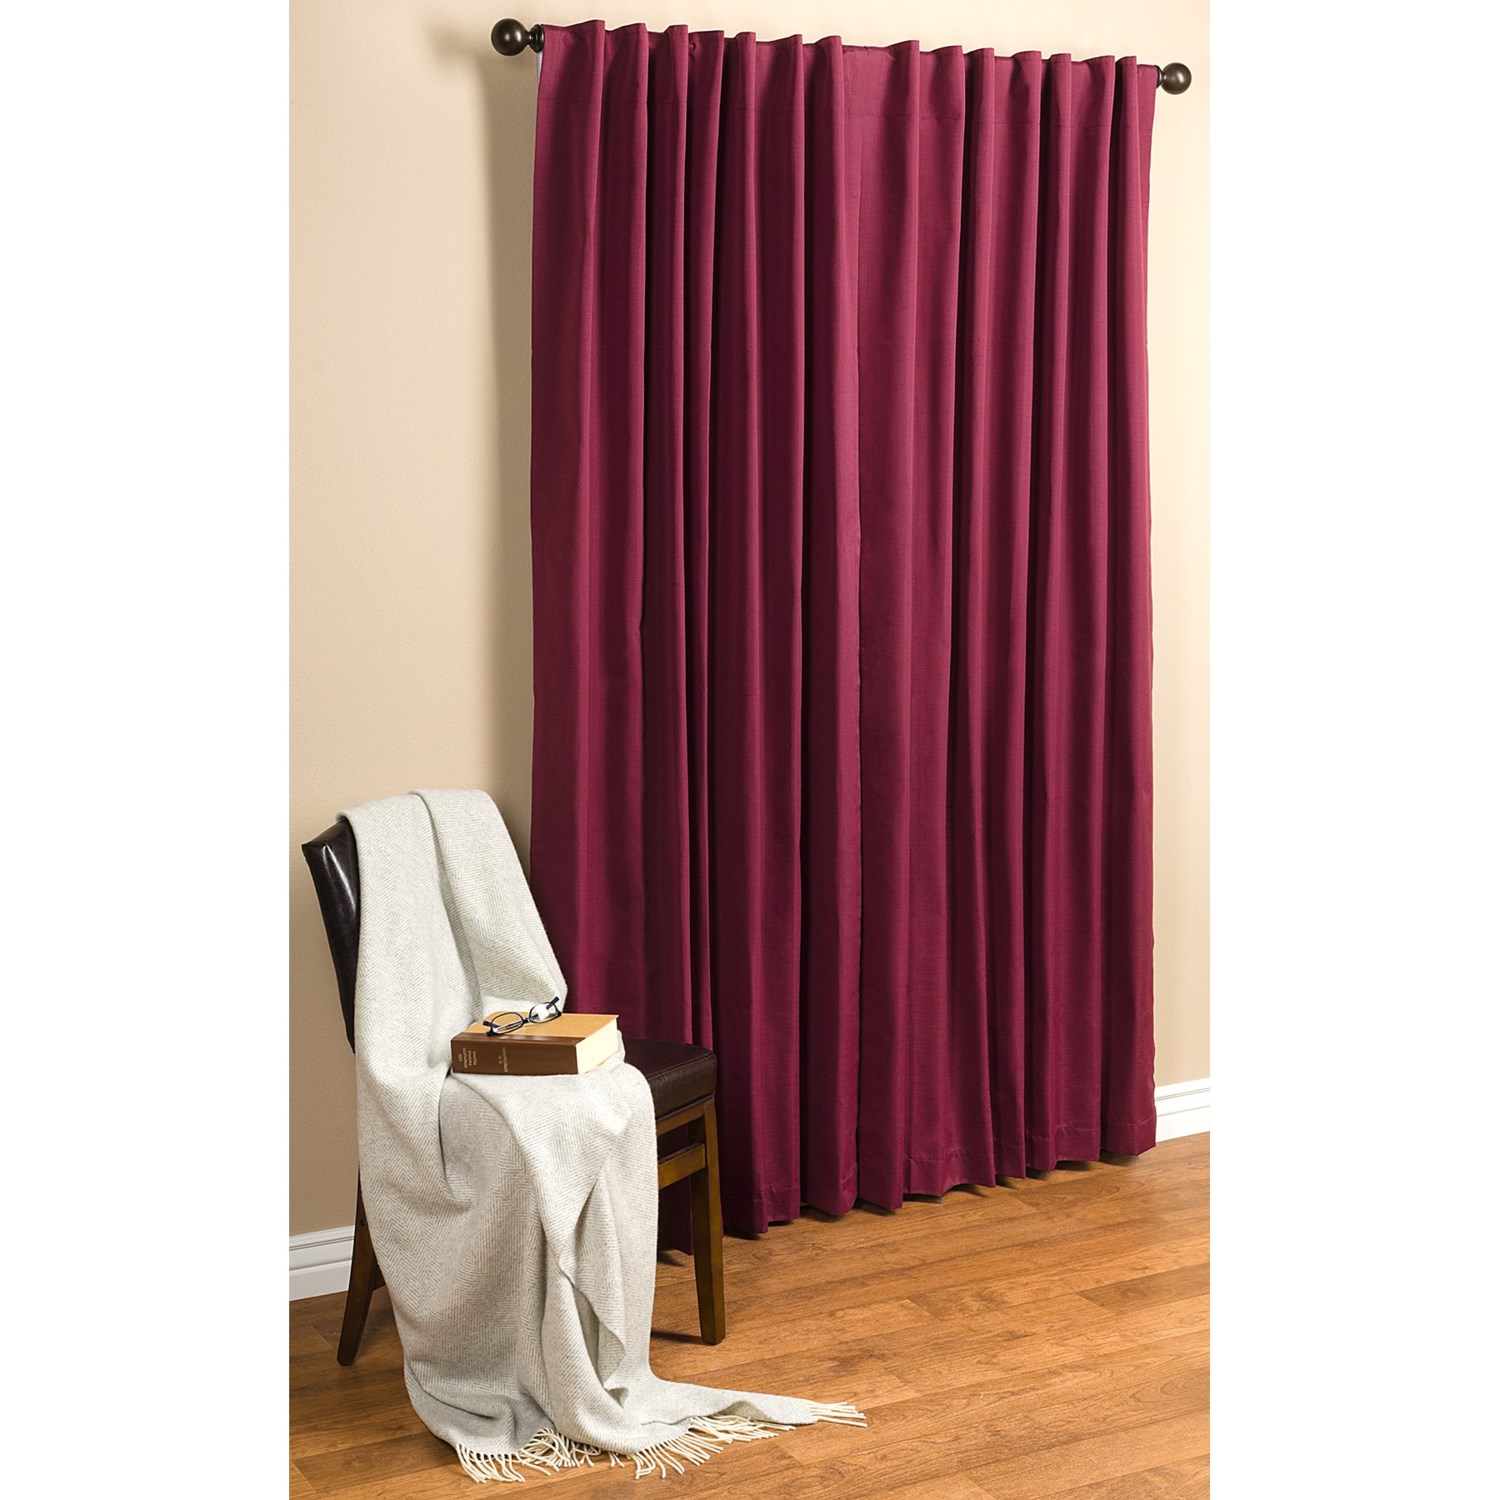 Commonwealth home fashions hotel chic blackout curtains for Hotel drapes for sale